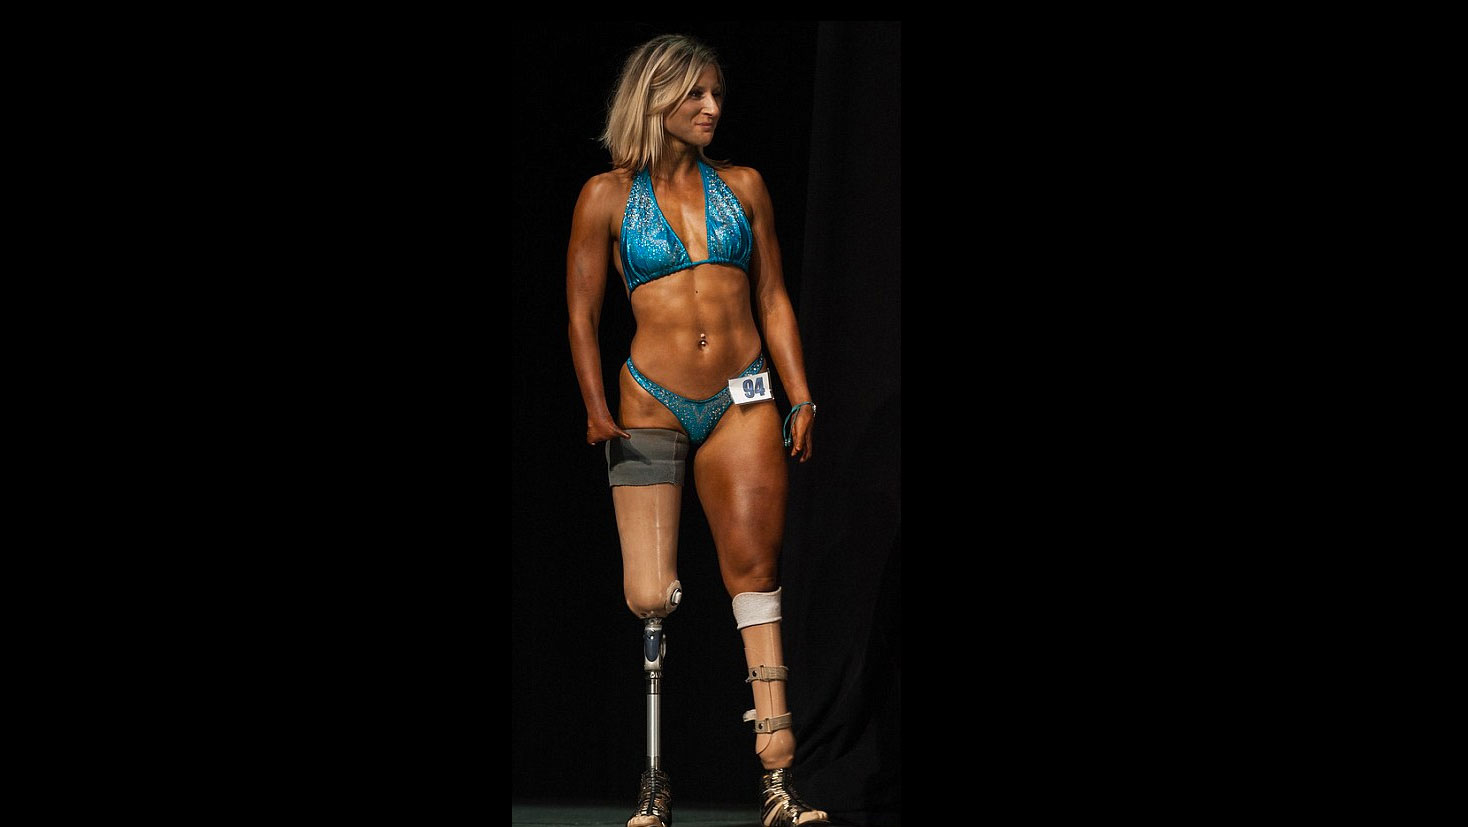 Ana Delia De Iturrondo Nude woman with four fingers and no legs competes in bodybuilding